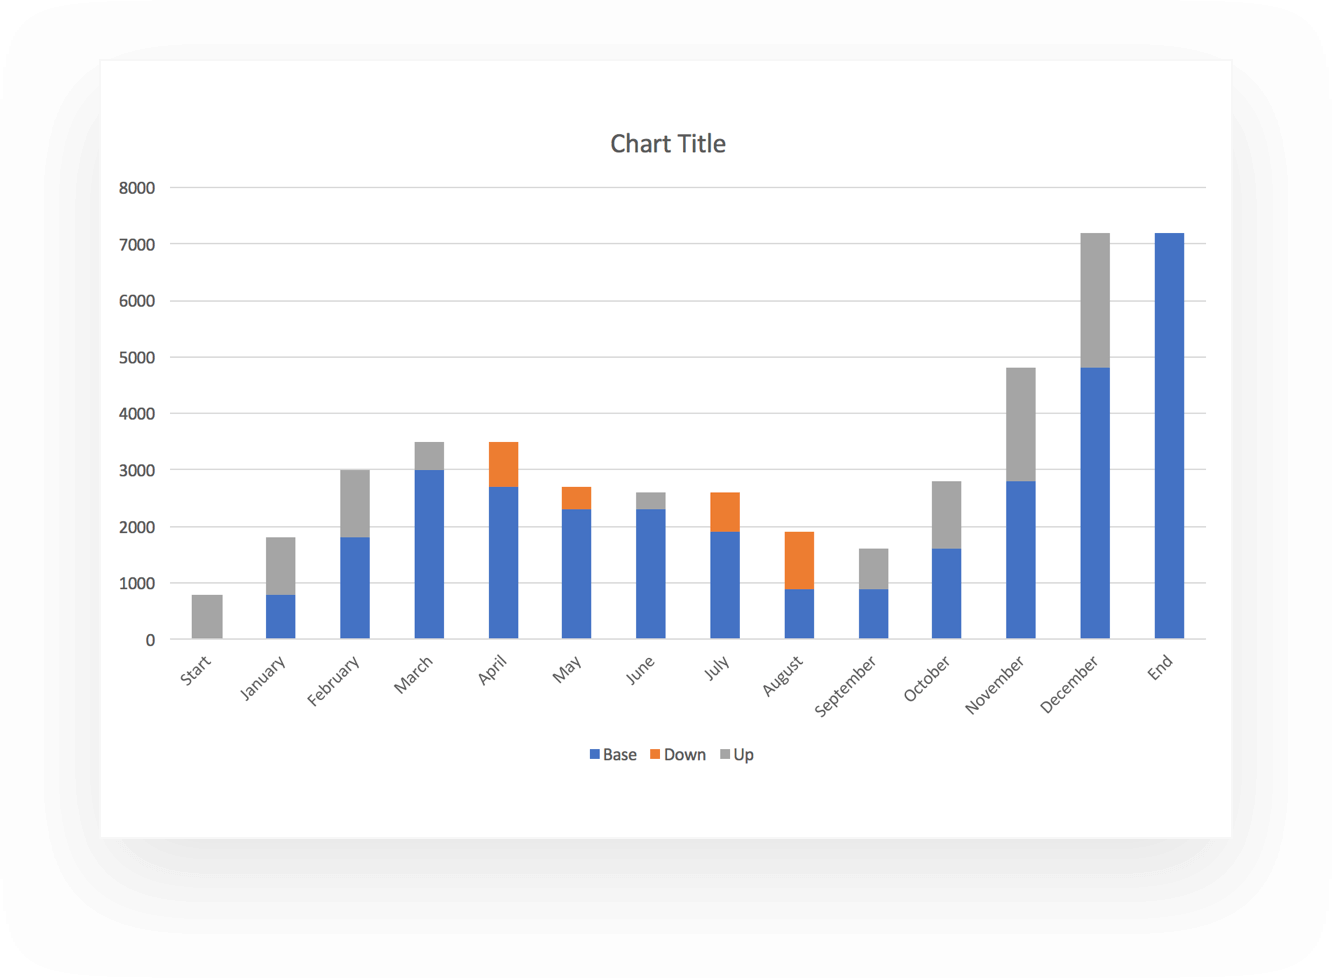 Waterfall chart excel template how to tips teamgantt look at that its got your numbers and everything however its not a waterfall chart not yet lets make that happen shall we ccuart Choice Image